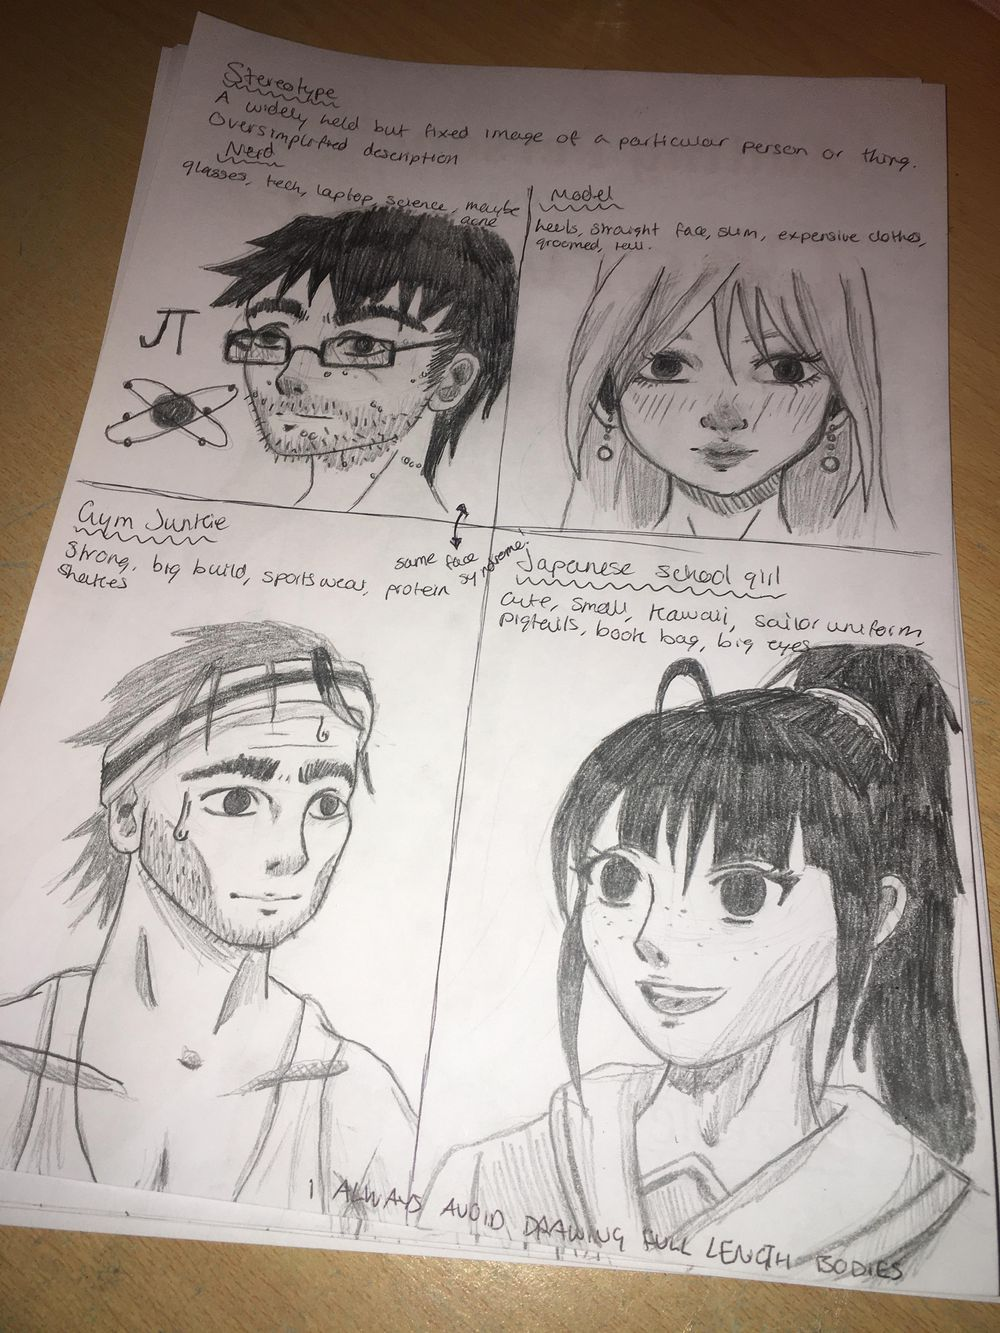 Adding Personality To Your Characters - Project - image 3 - student project